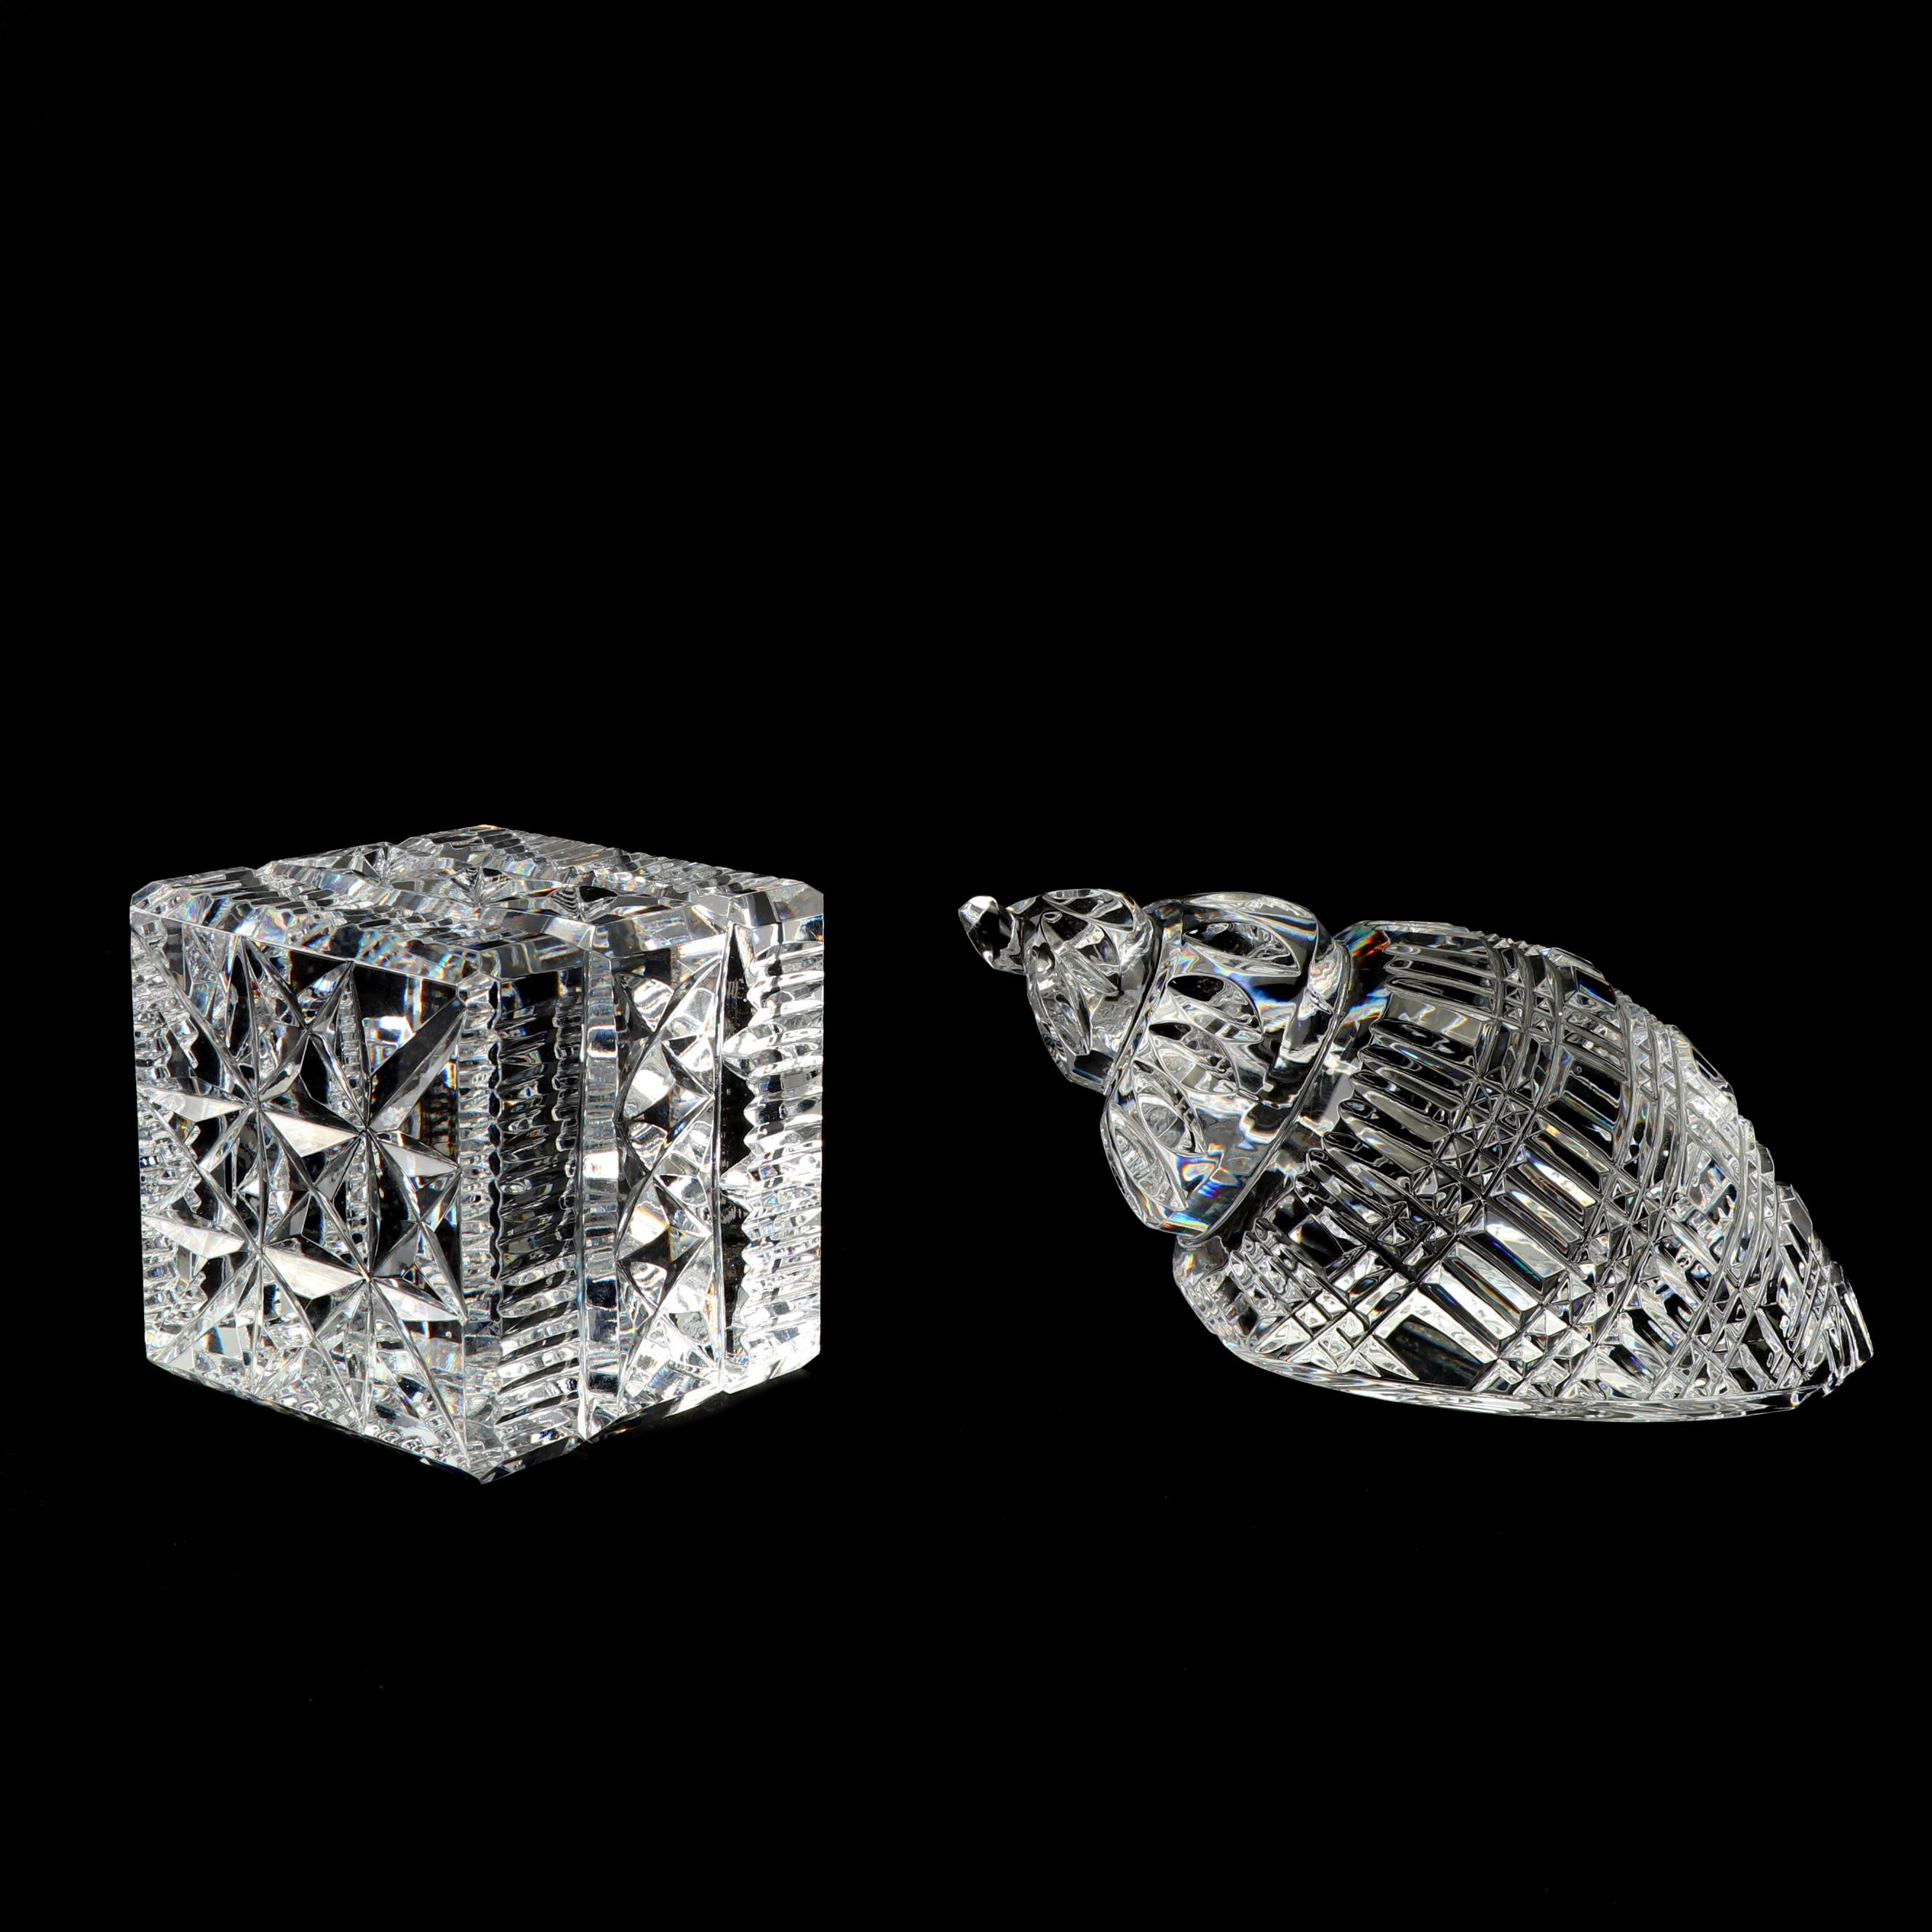 Waterford Crystal Block and Conch Shell Paperweights